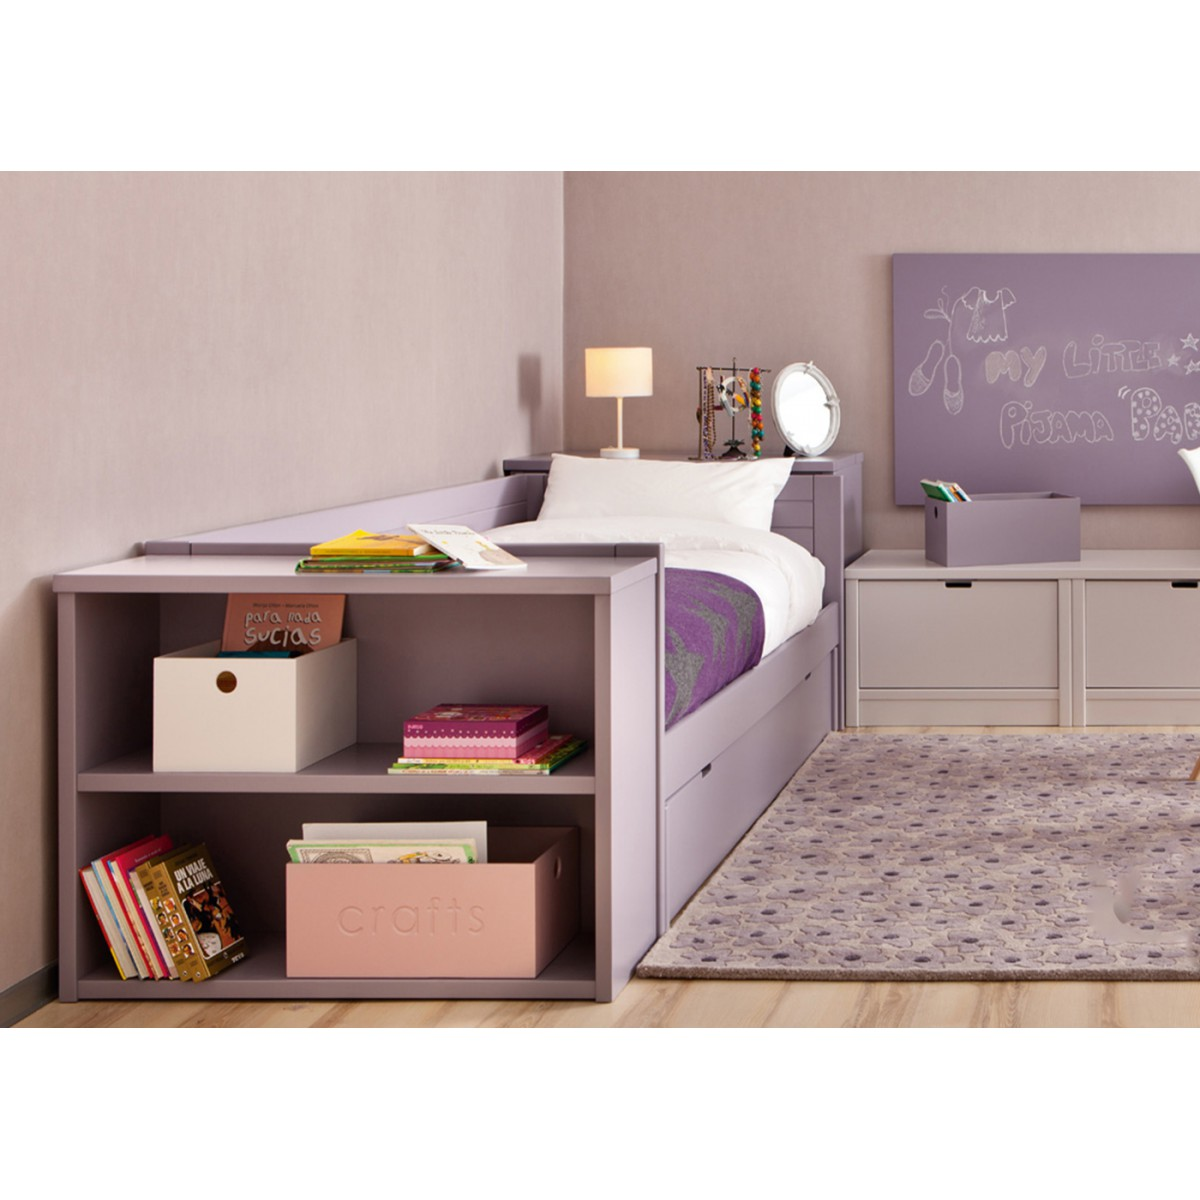 chambre d 39 enfant haut de gamme avec lit et bureau design asoral. Black Bedroom Furniture Sets. Home Design Ideas